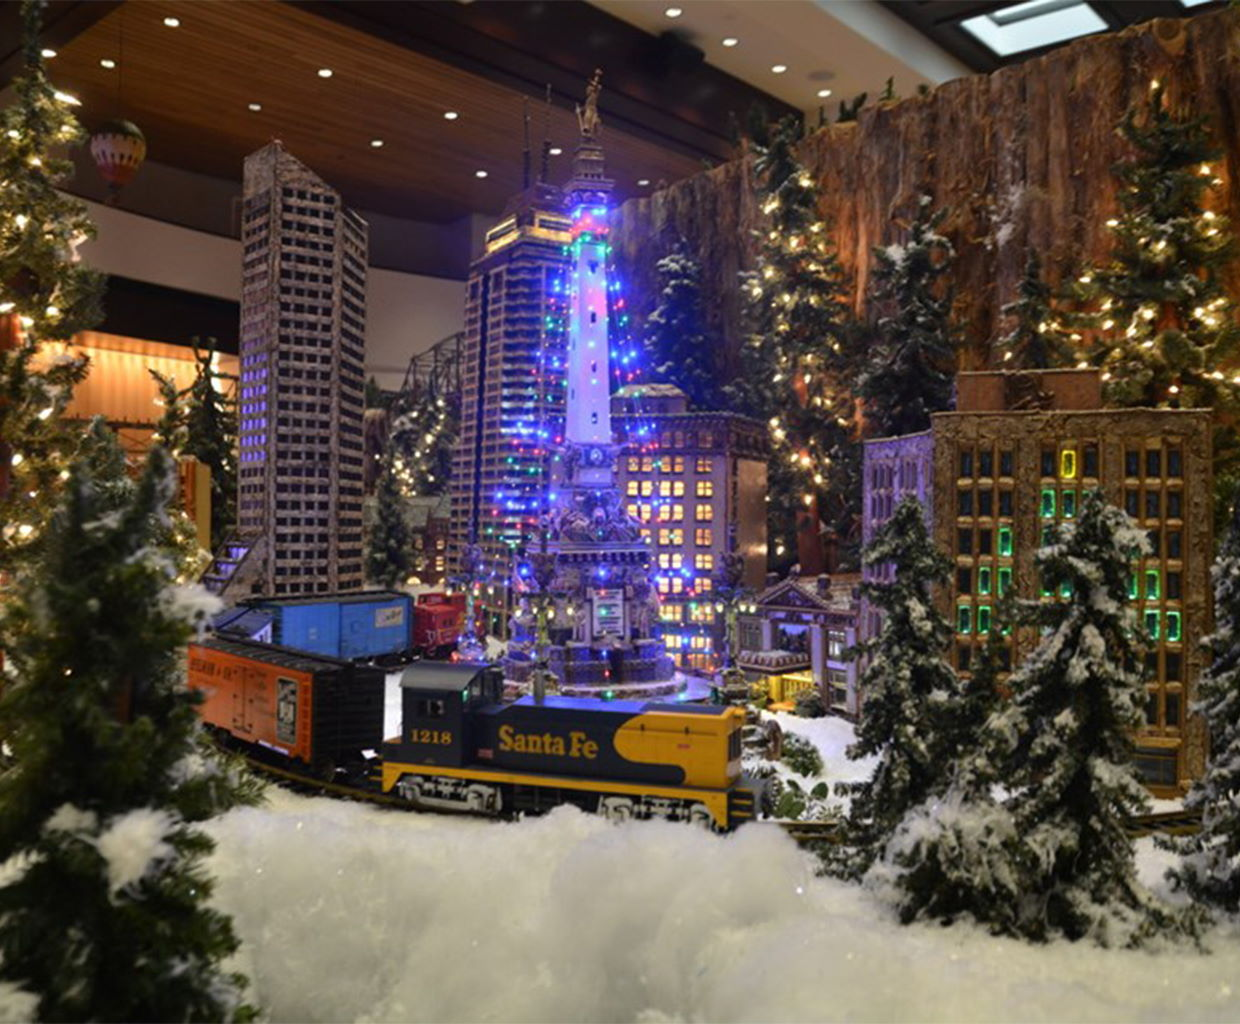 Jingle Rails at The Eiteljorg Museum in Indianapolis